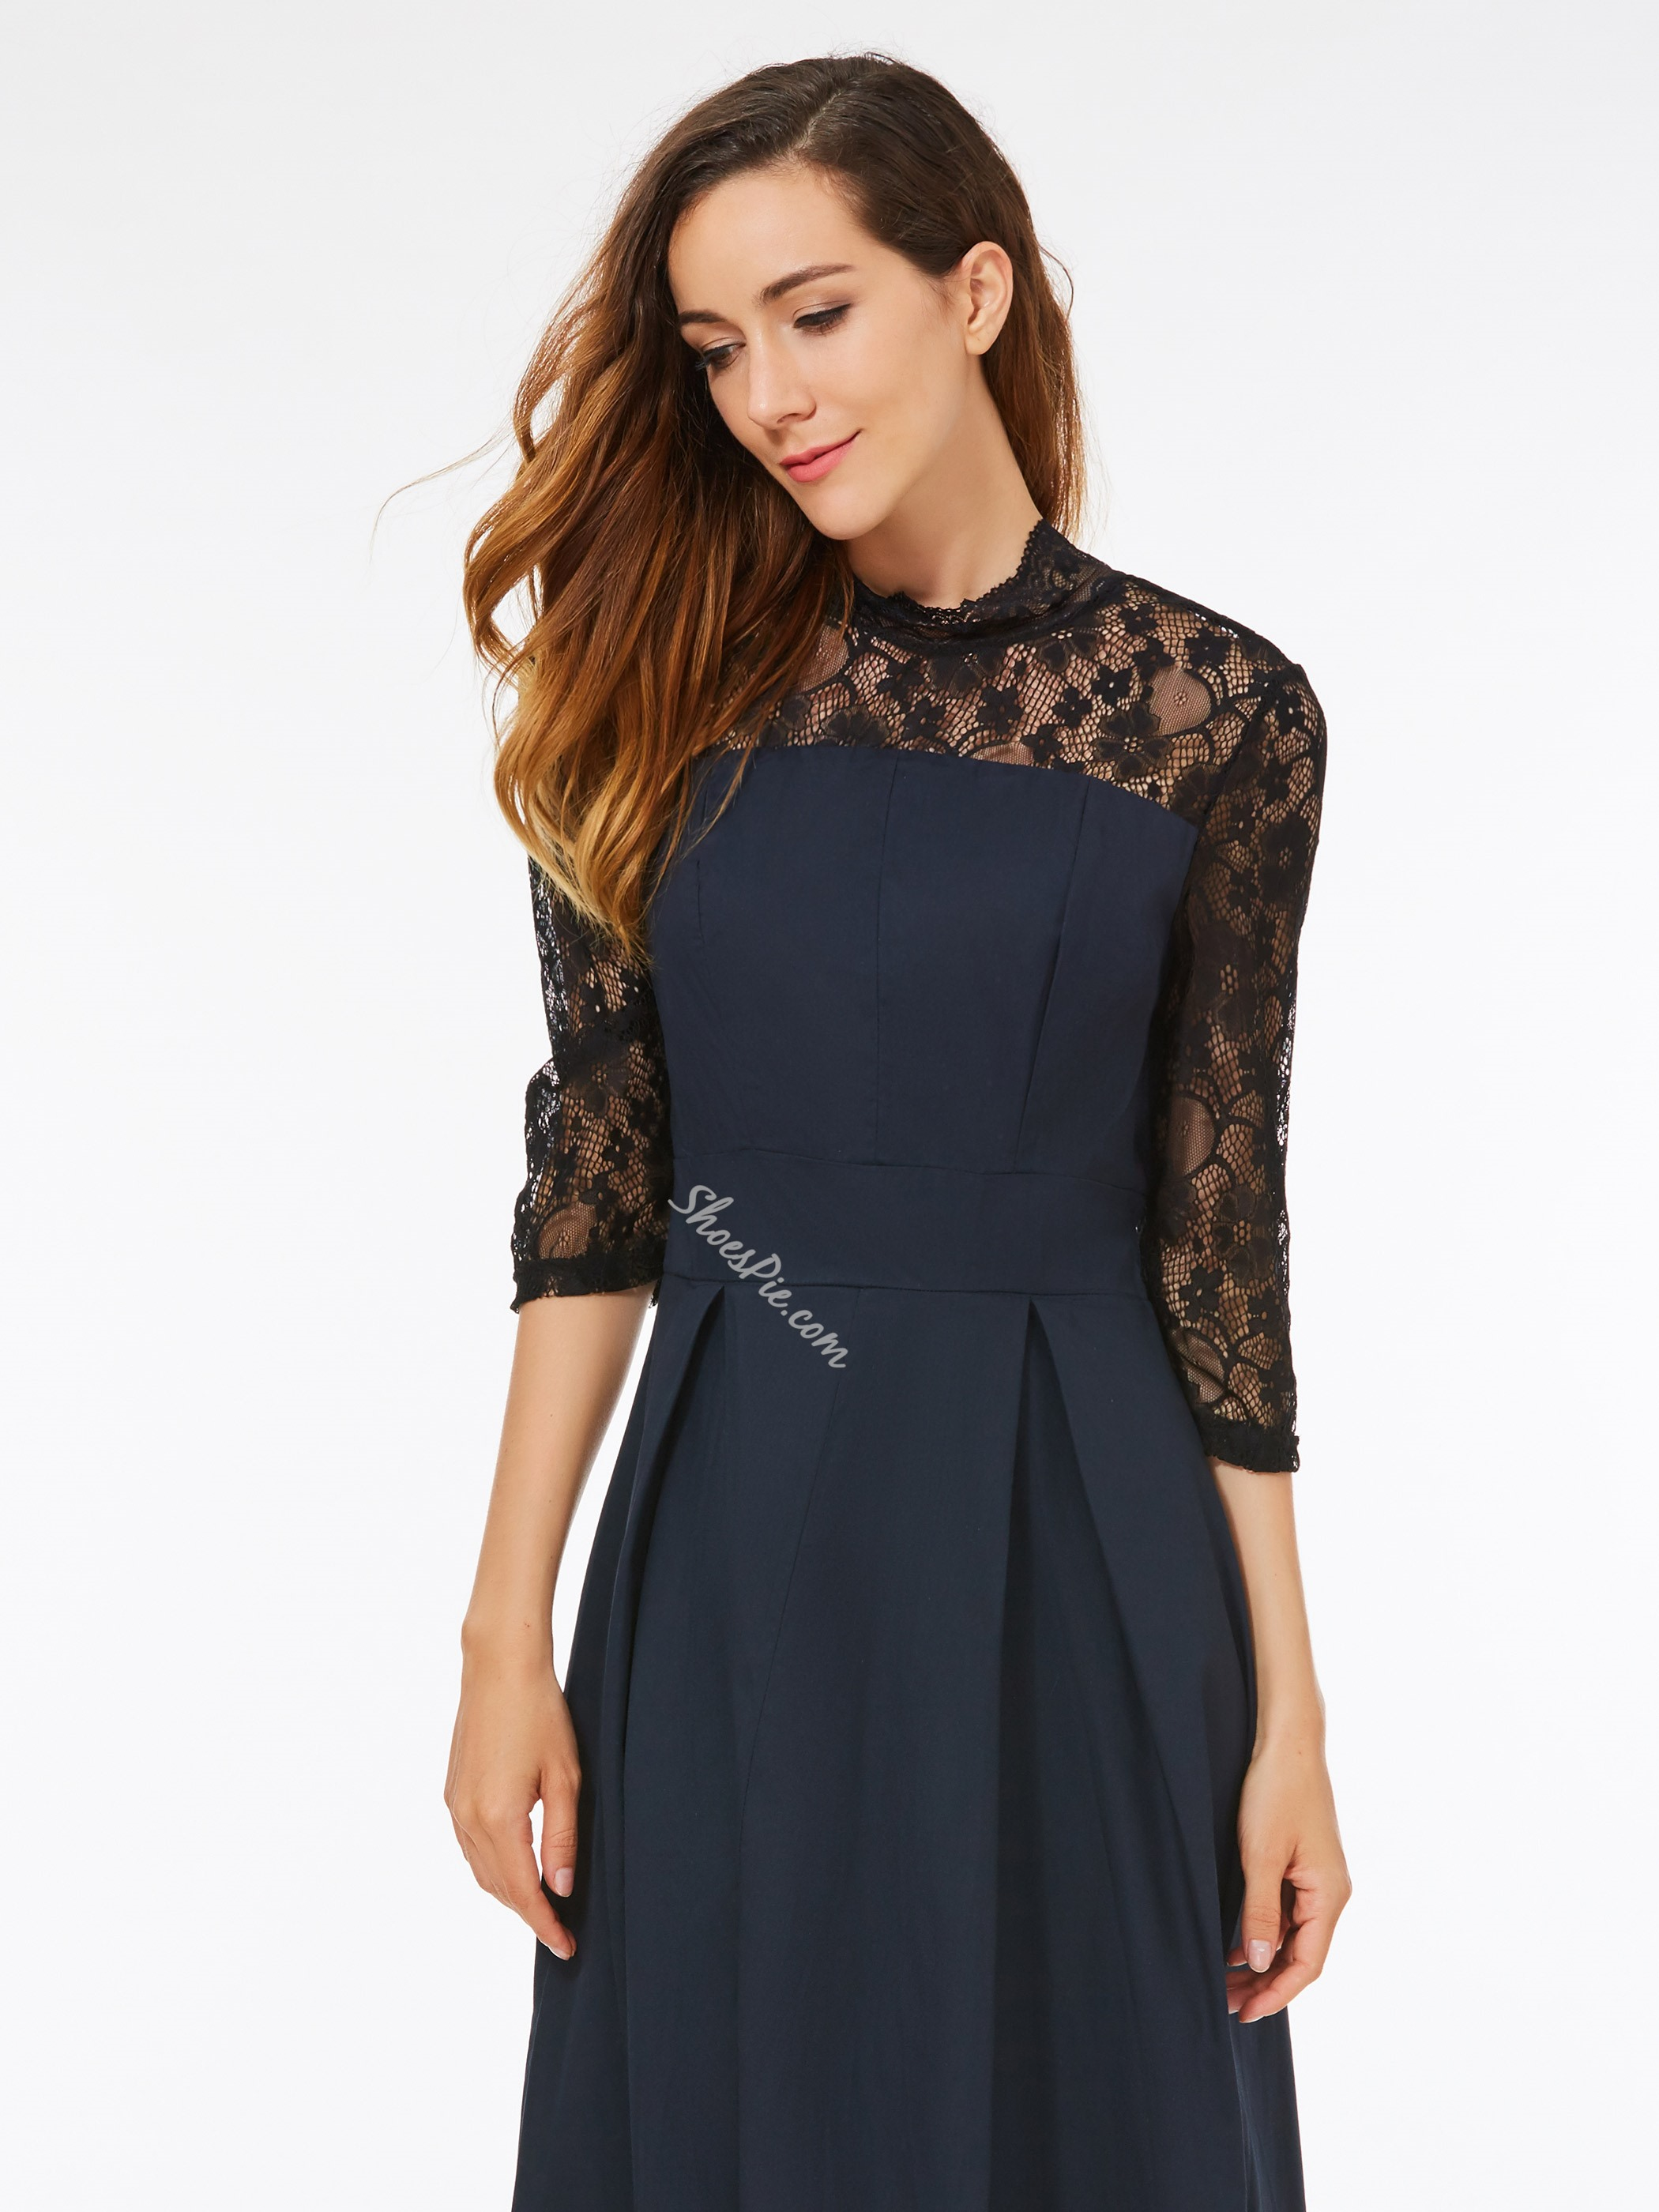 A-Line Stand Collar Lace Bodycon Dresses